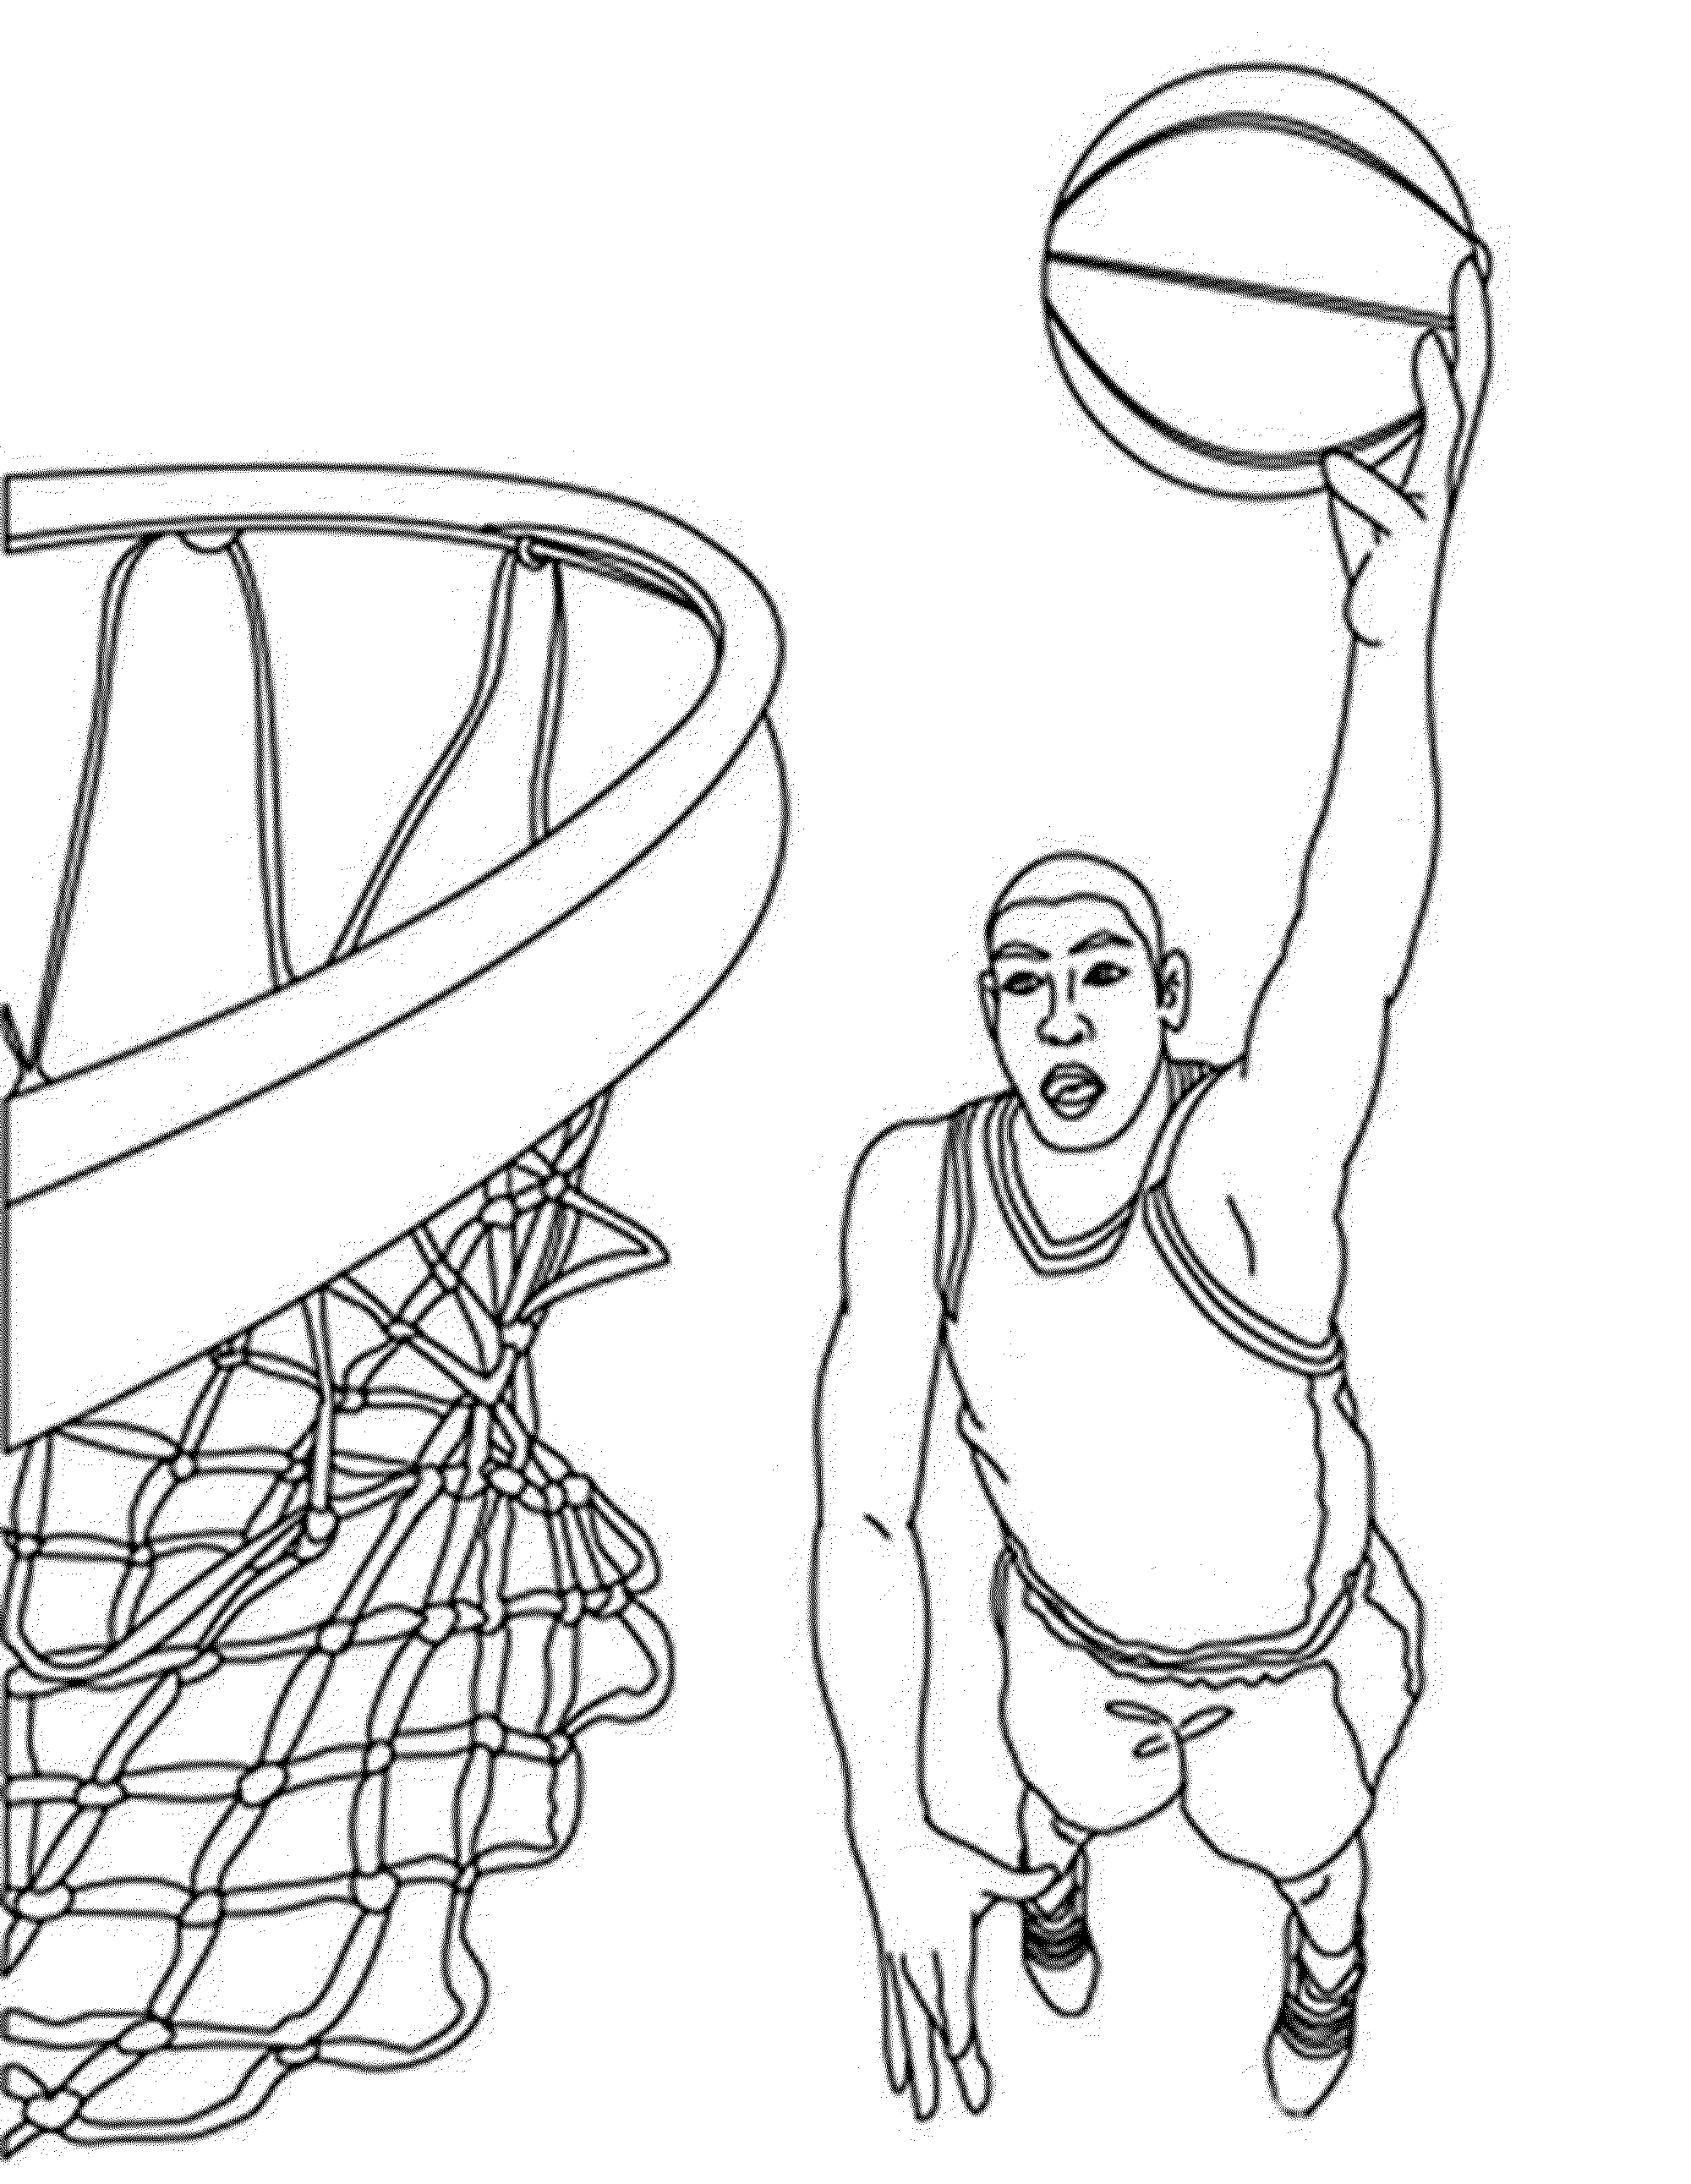 basketball player coloring pages basketball players playing basketball coloring page basketball pages coloring player